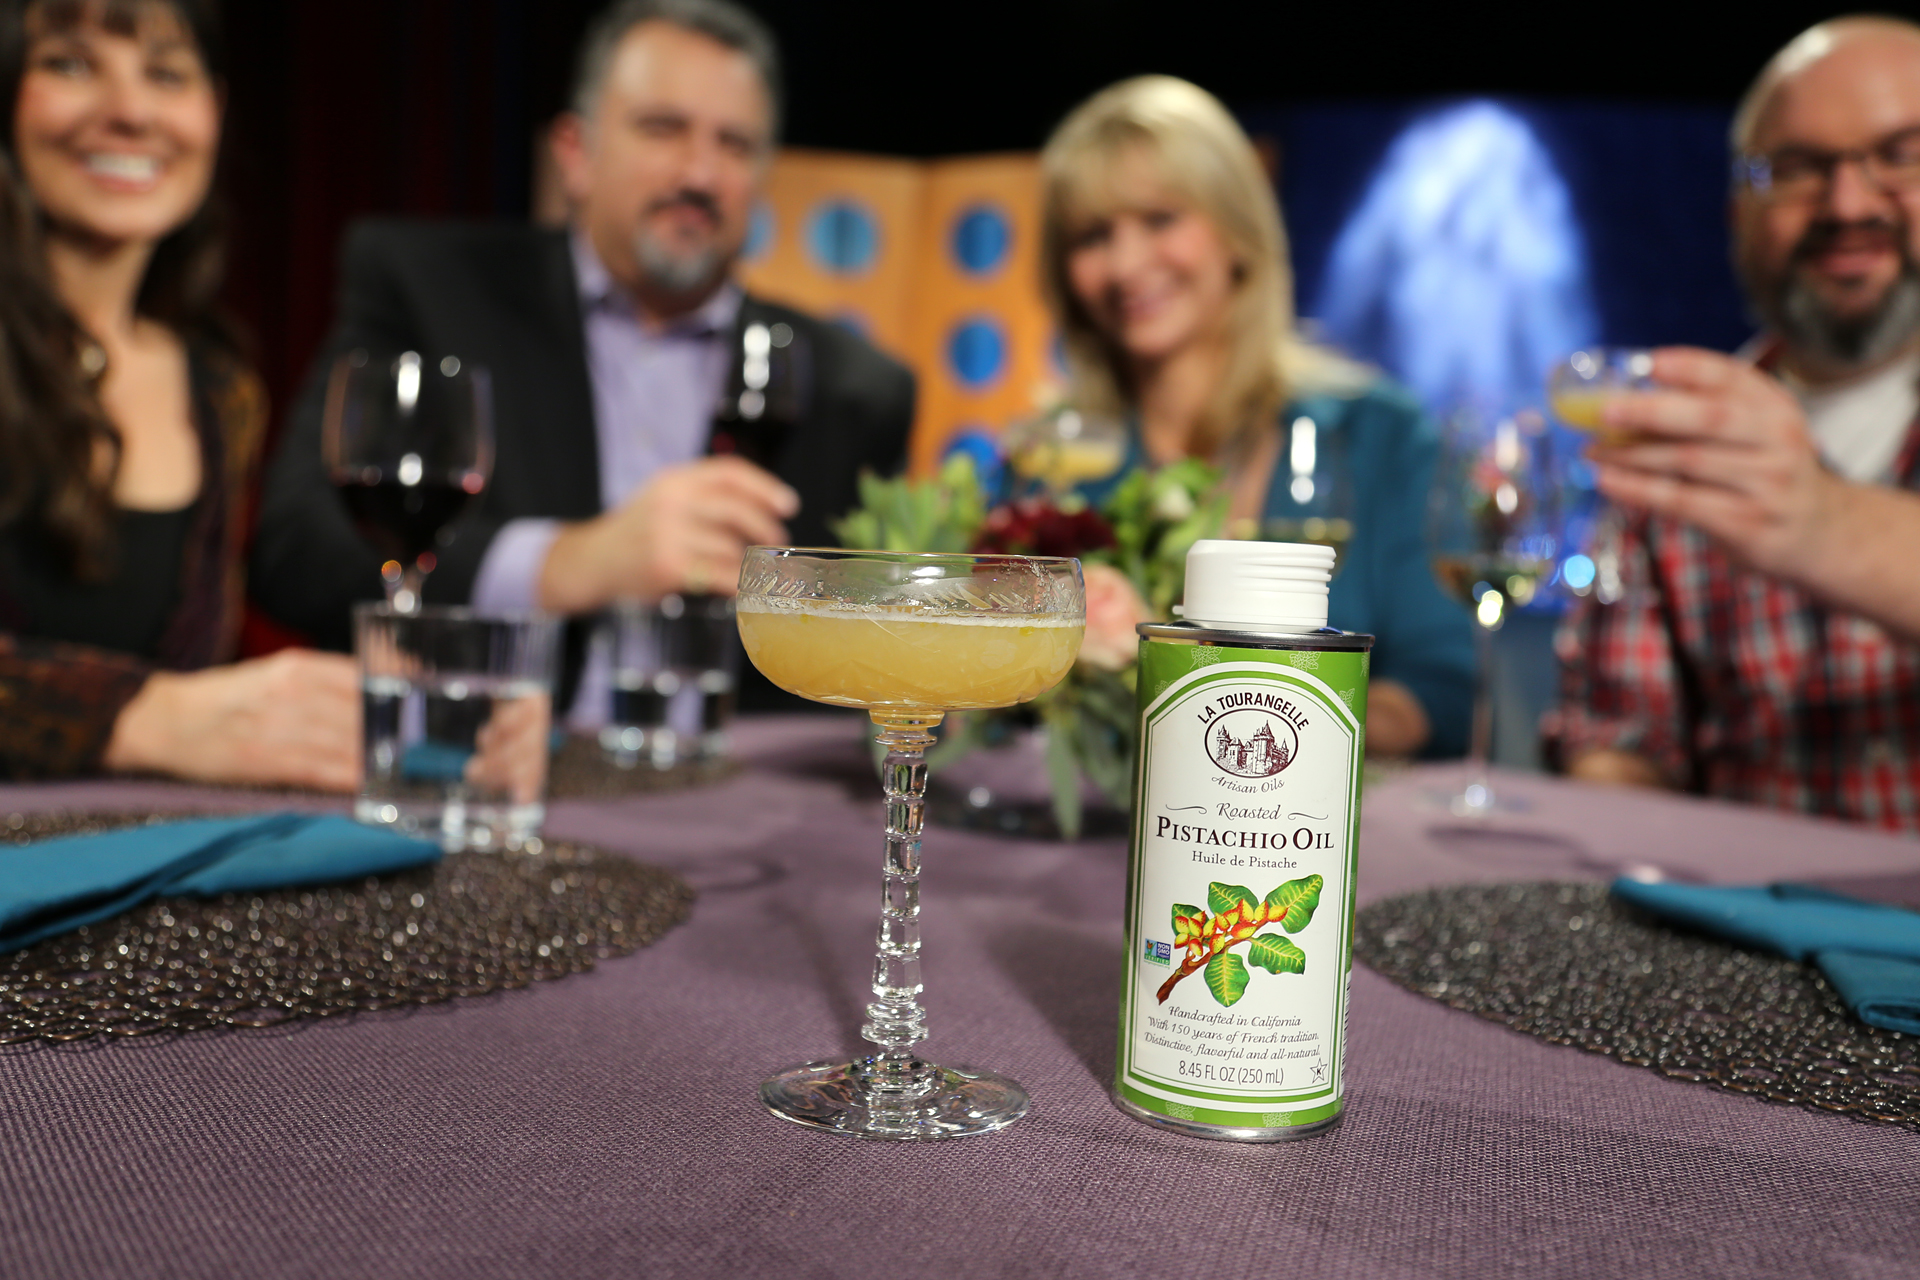 Get a taste of the Pyrenees with this delicious and flavorful cocktail recipe featuring Pistachio oil!